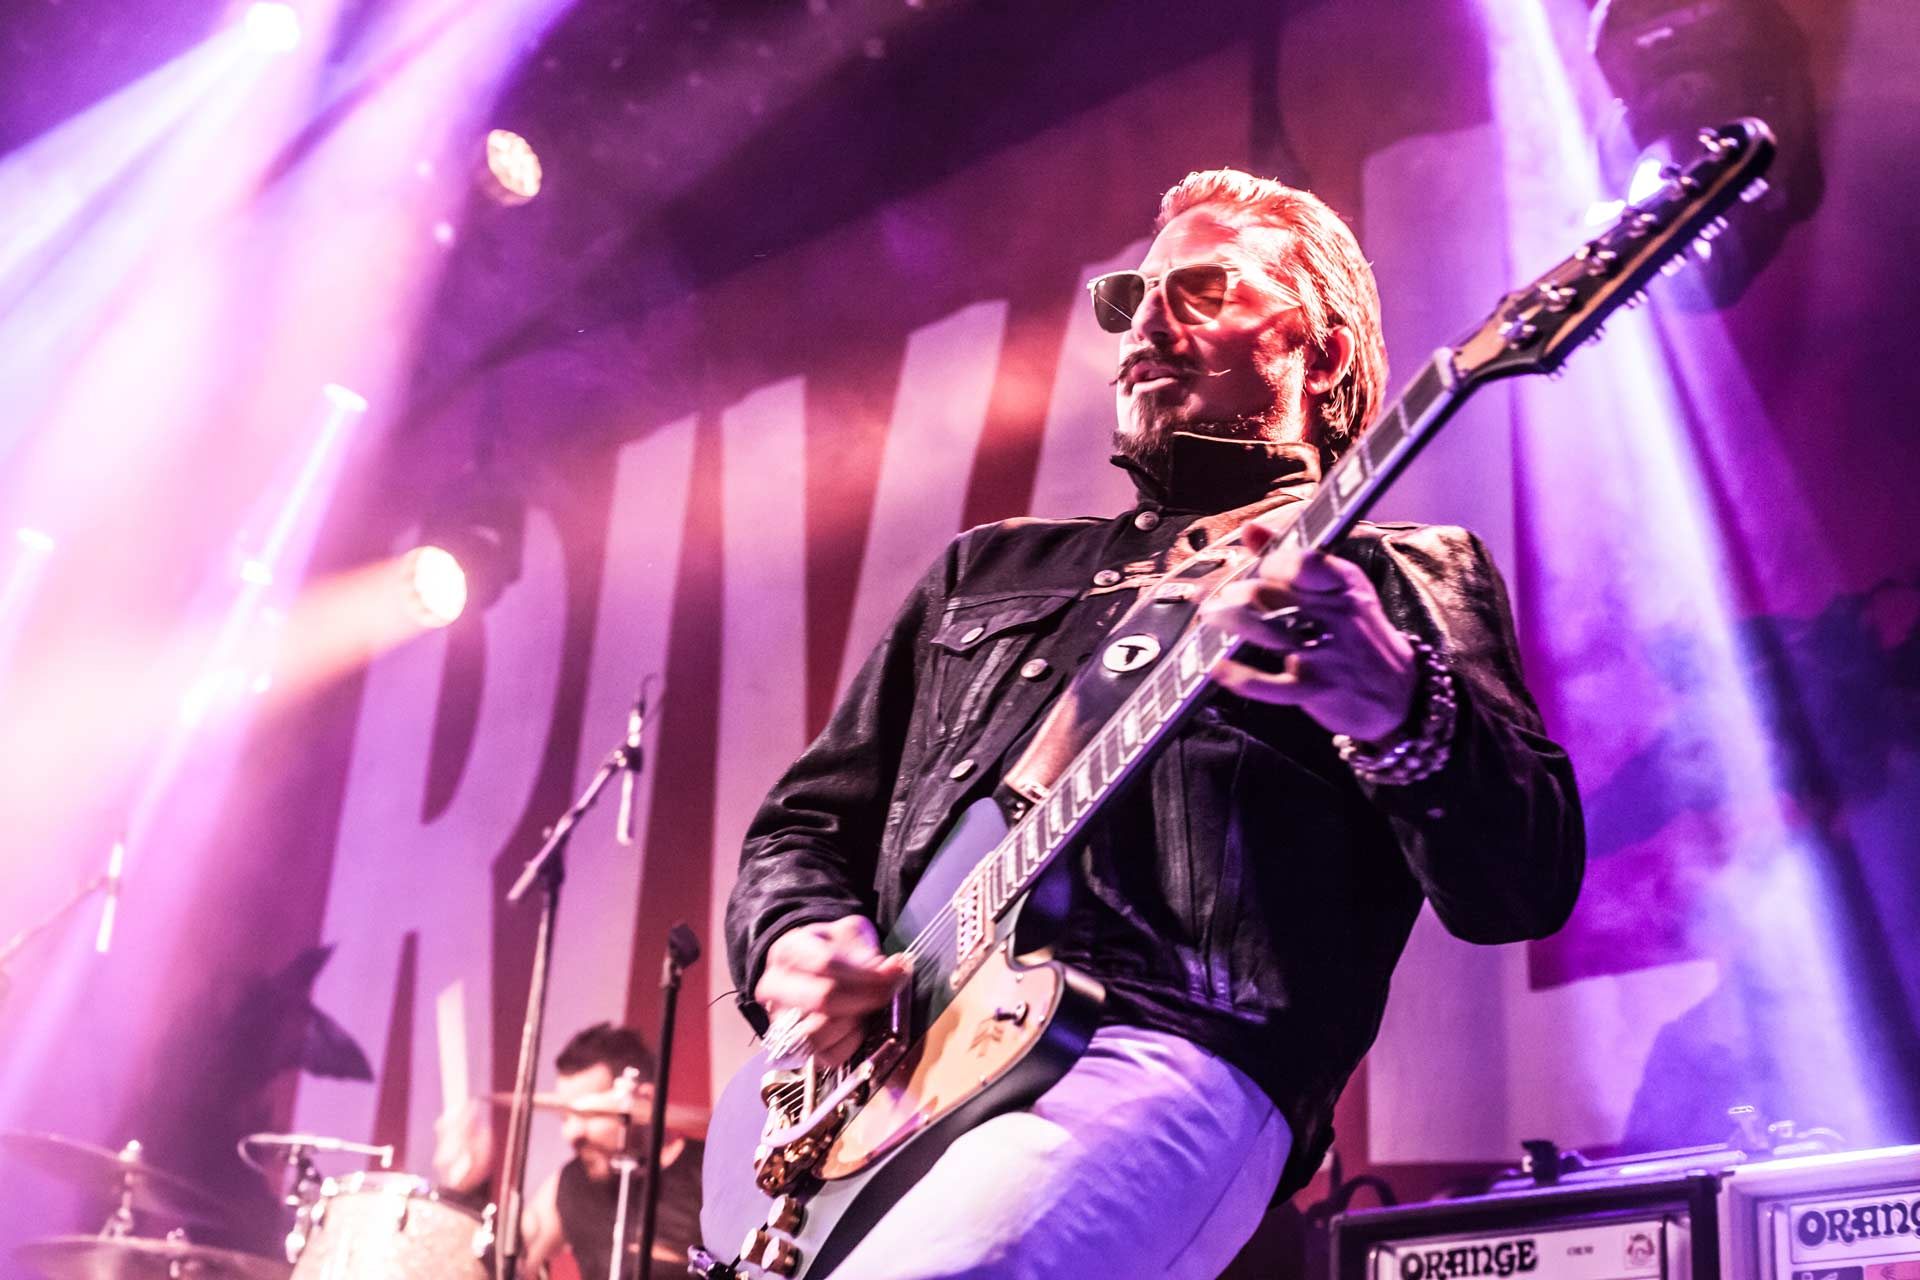 Scott Holiday, Rival Sons